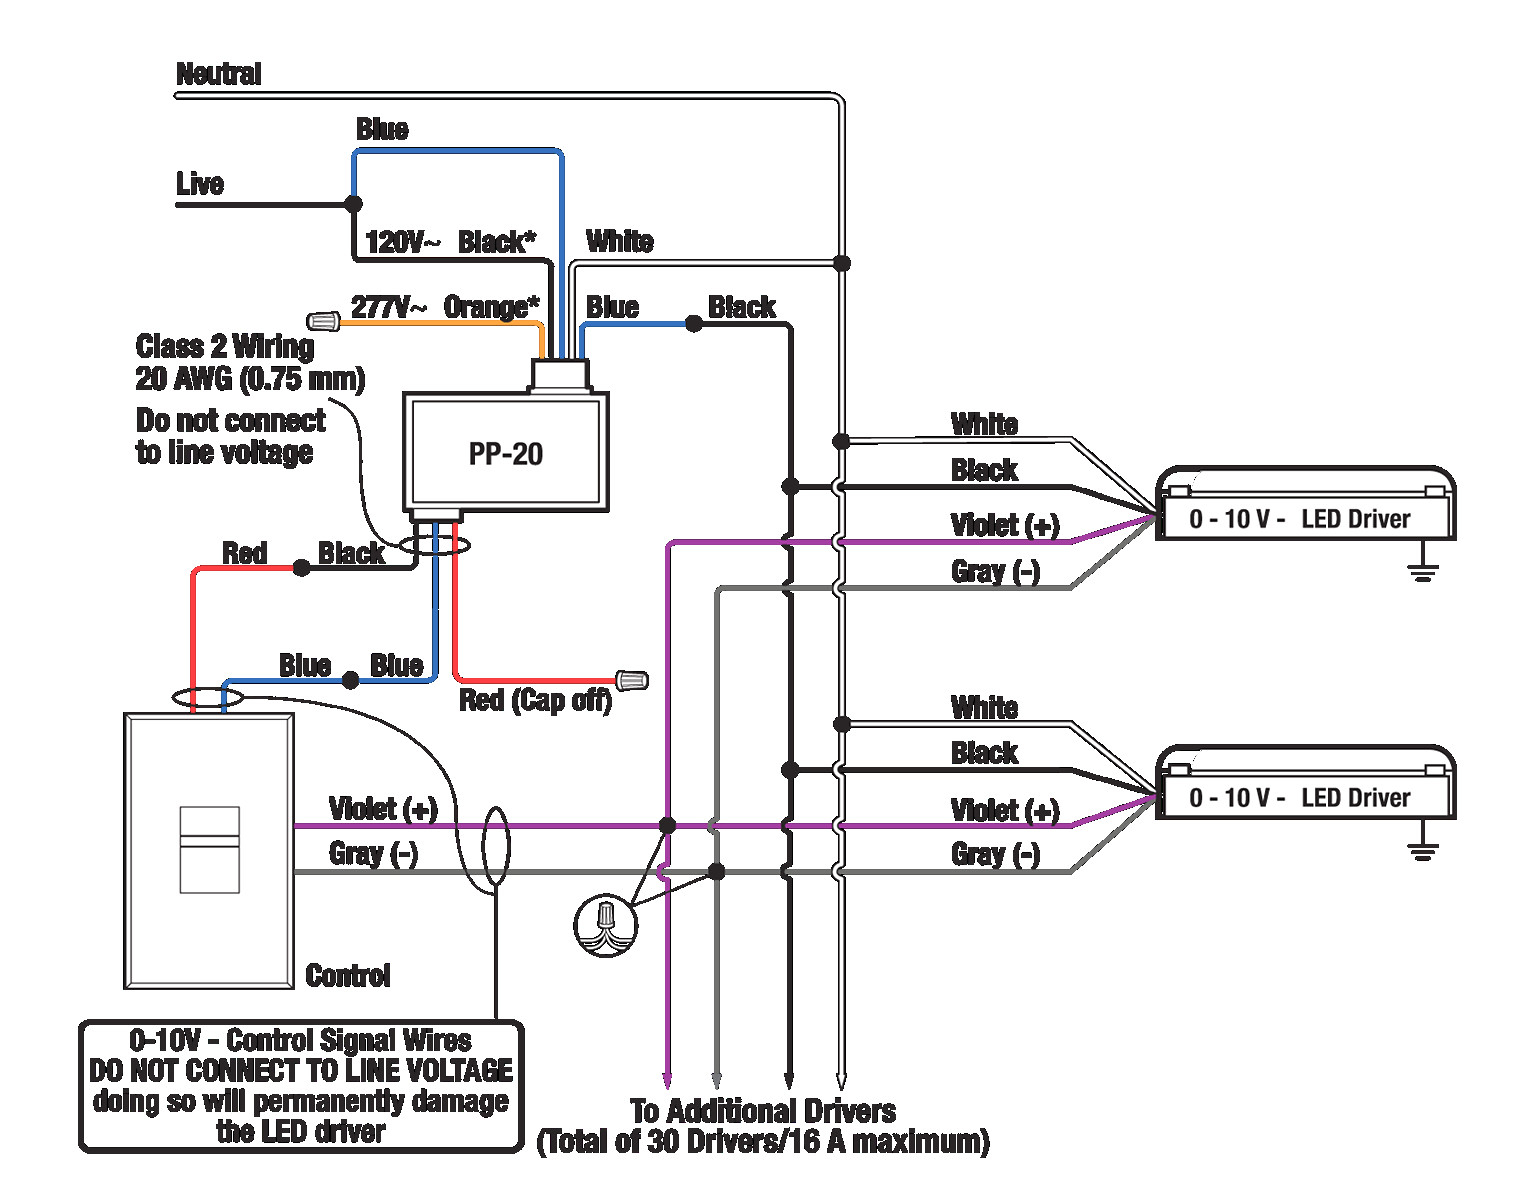 Lutron Eco Dimming Ballast Wiring Diagram | Index listing of wiring on advance mark 7 wiring diagram, compact fluorescent wiring diagram, advance transformer wiring diagram, 0-10v dimmer wiring diagram, plc wiring diagram, hydraulic elevator wiring diagram, hps wiring diagram, t8 led wiring diagram, light dimmer wiring diagram, capacitor wiring diagram, fog lamp wiring diagram, 0-10v dimming led diagram, cree led wiring diagram, thermal controller wiring diagram,